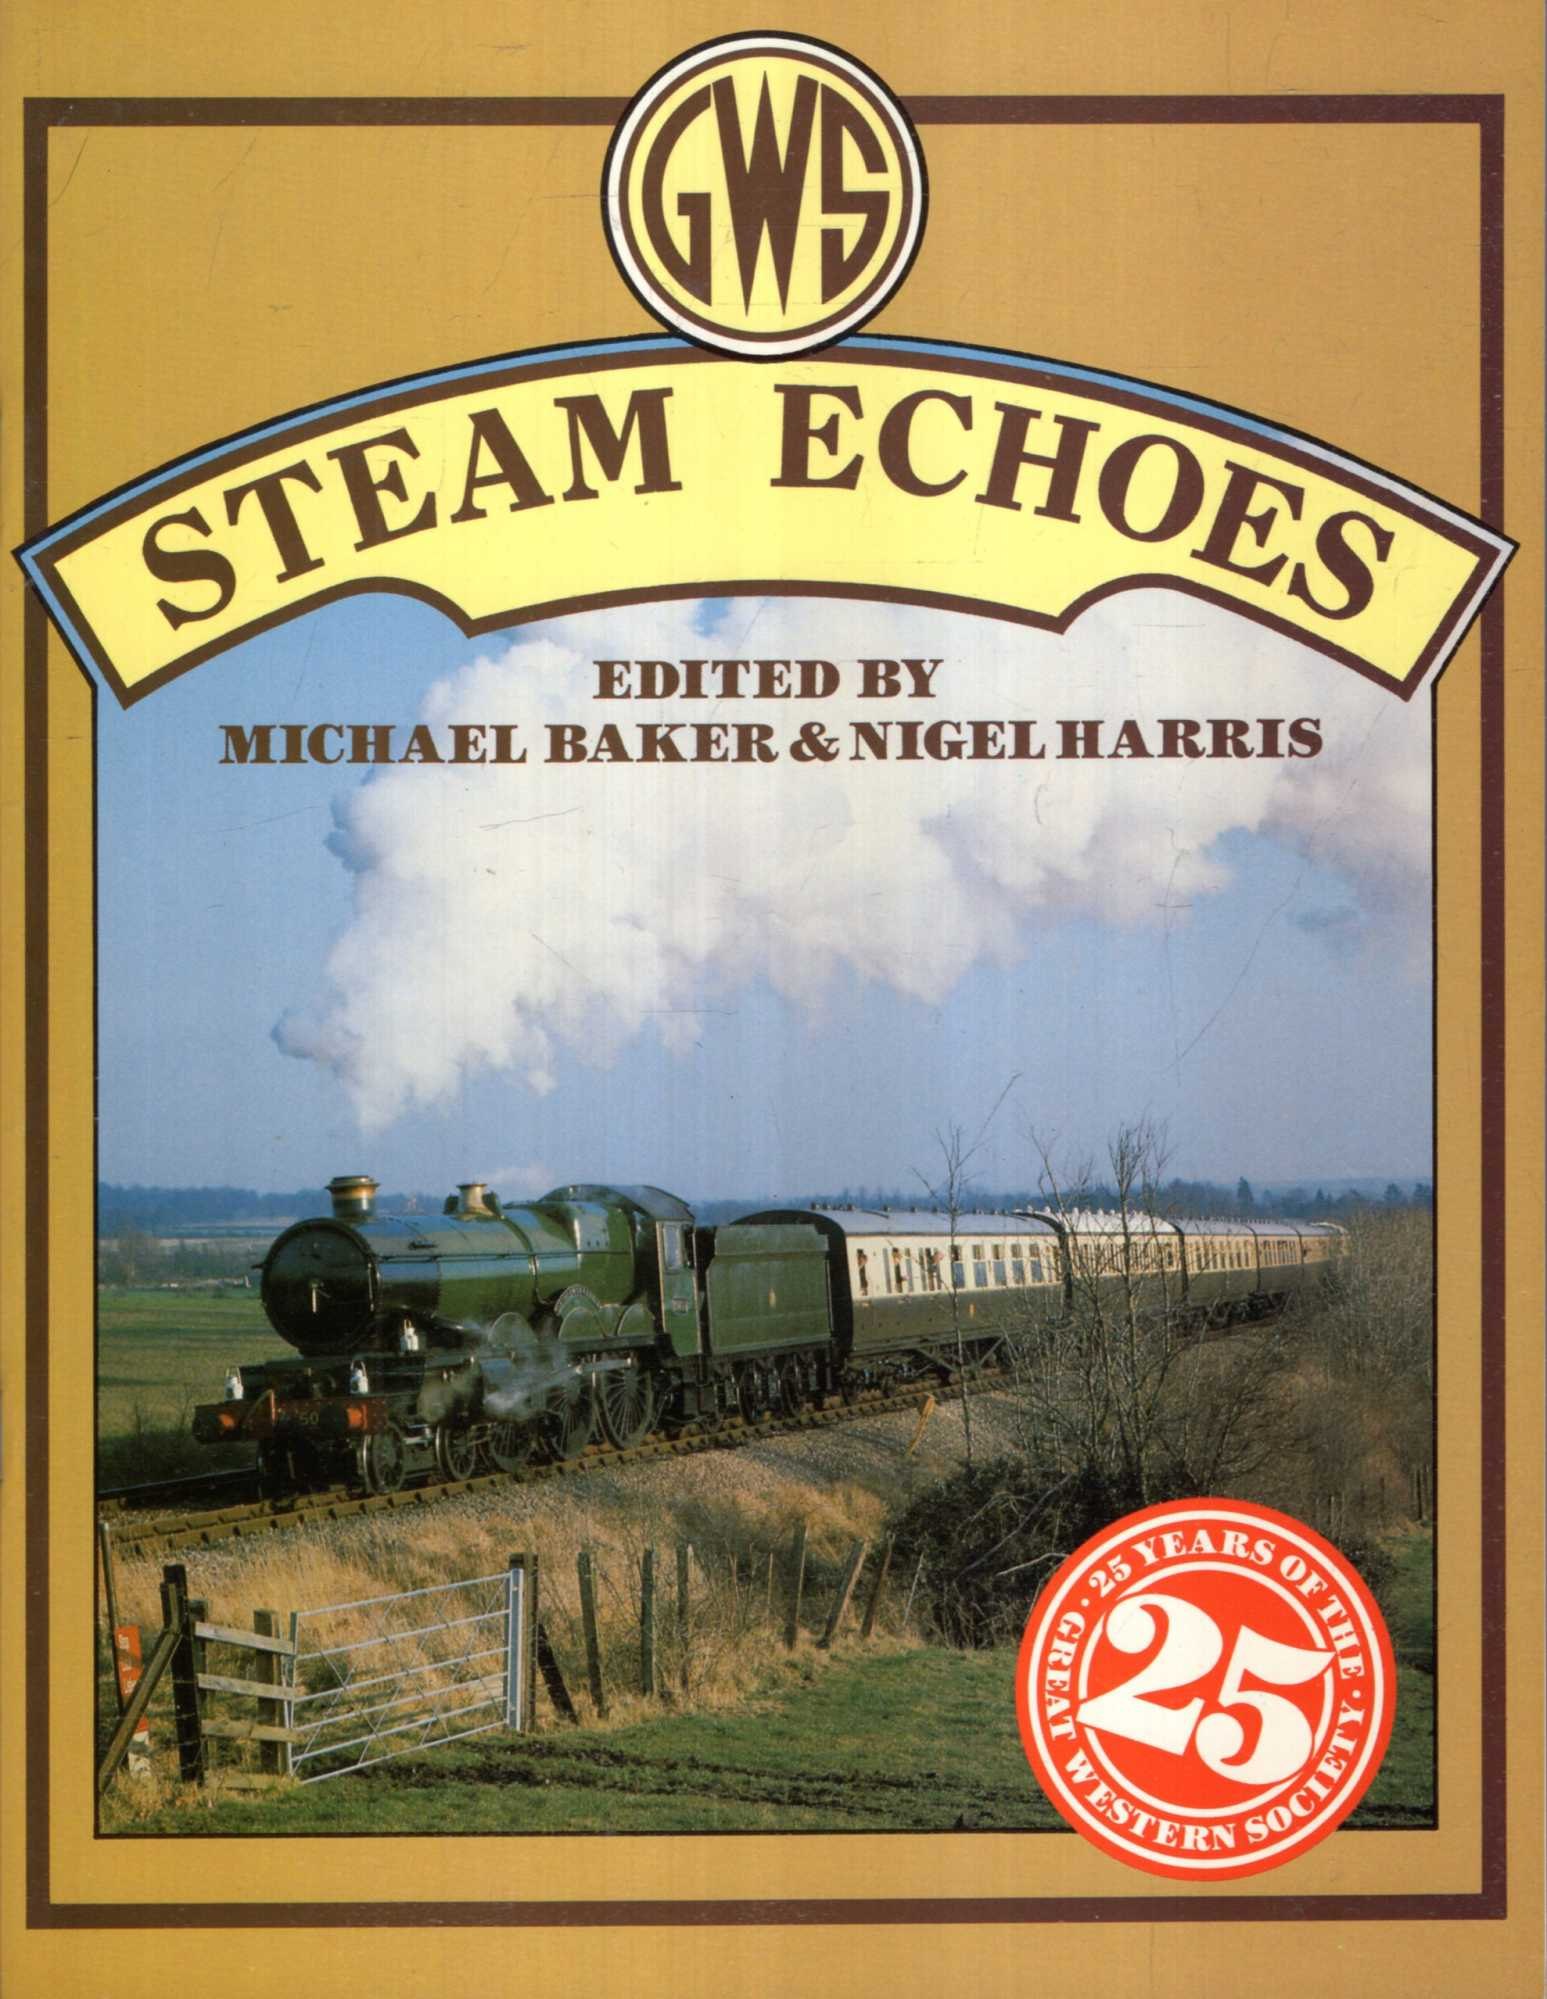 Image for Steam Echoes: Twenty-fifth Anniversary of the Great Western Society GWR